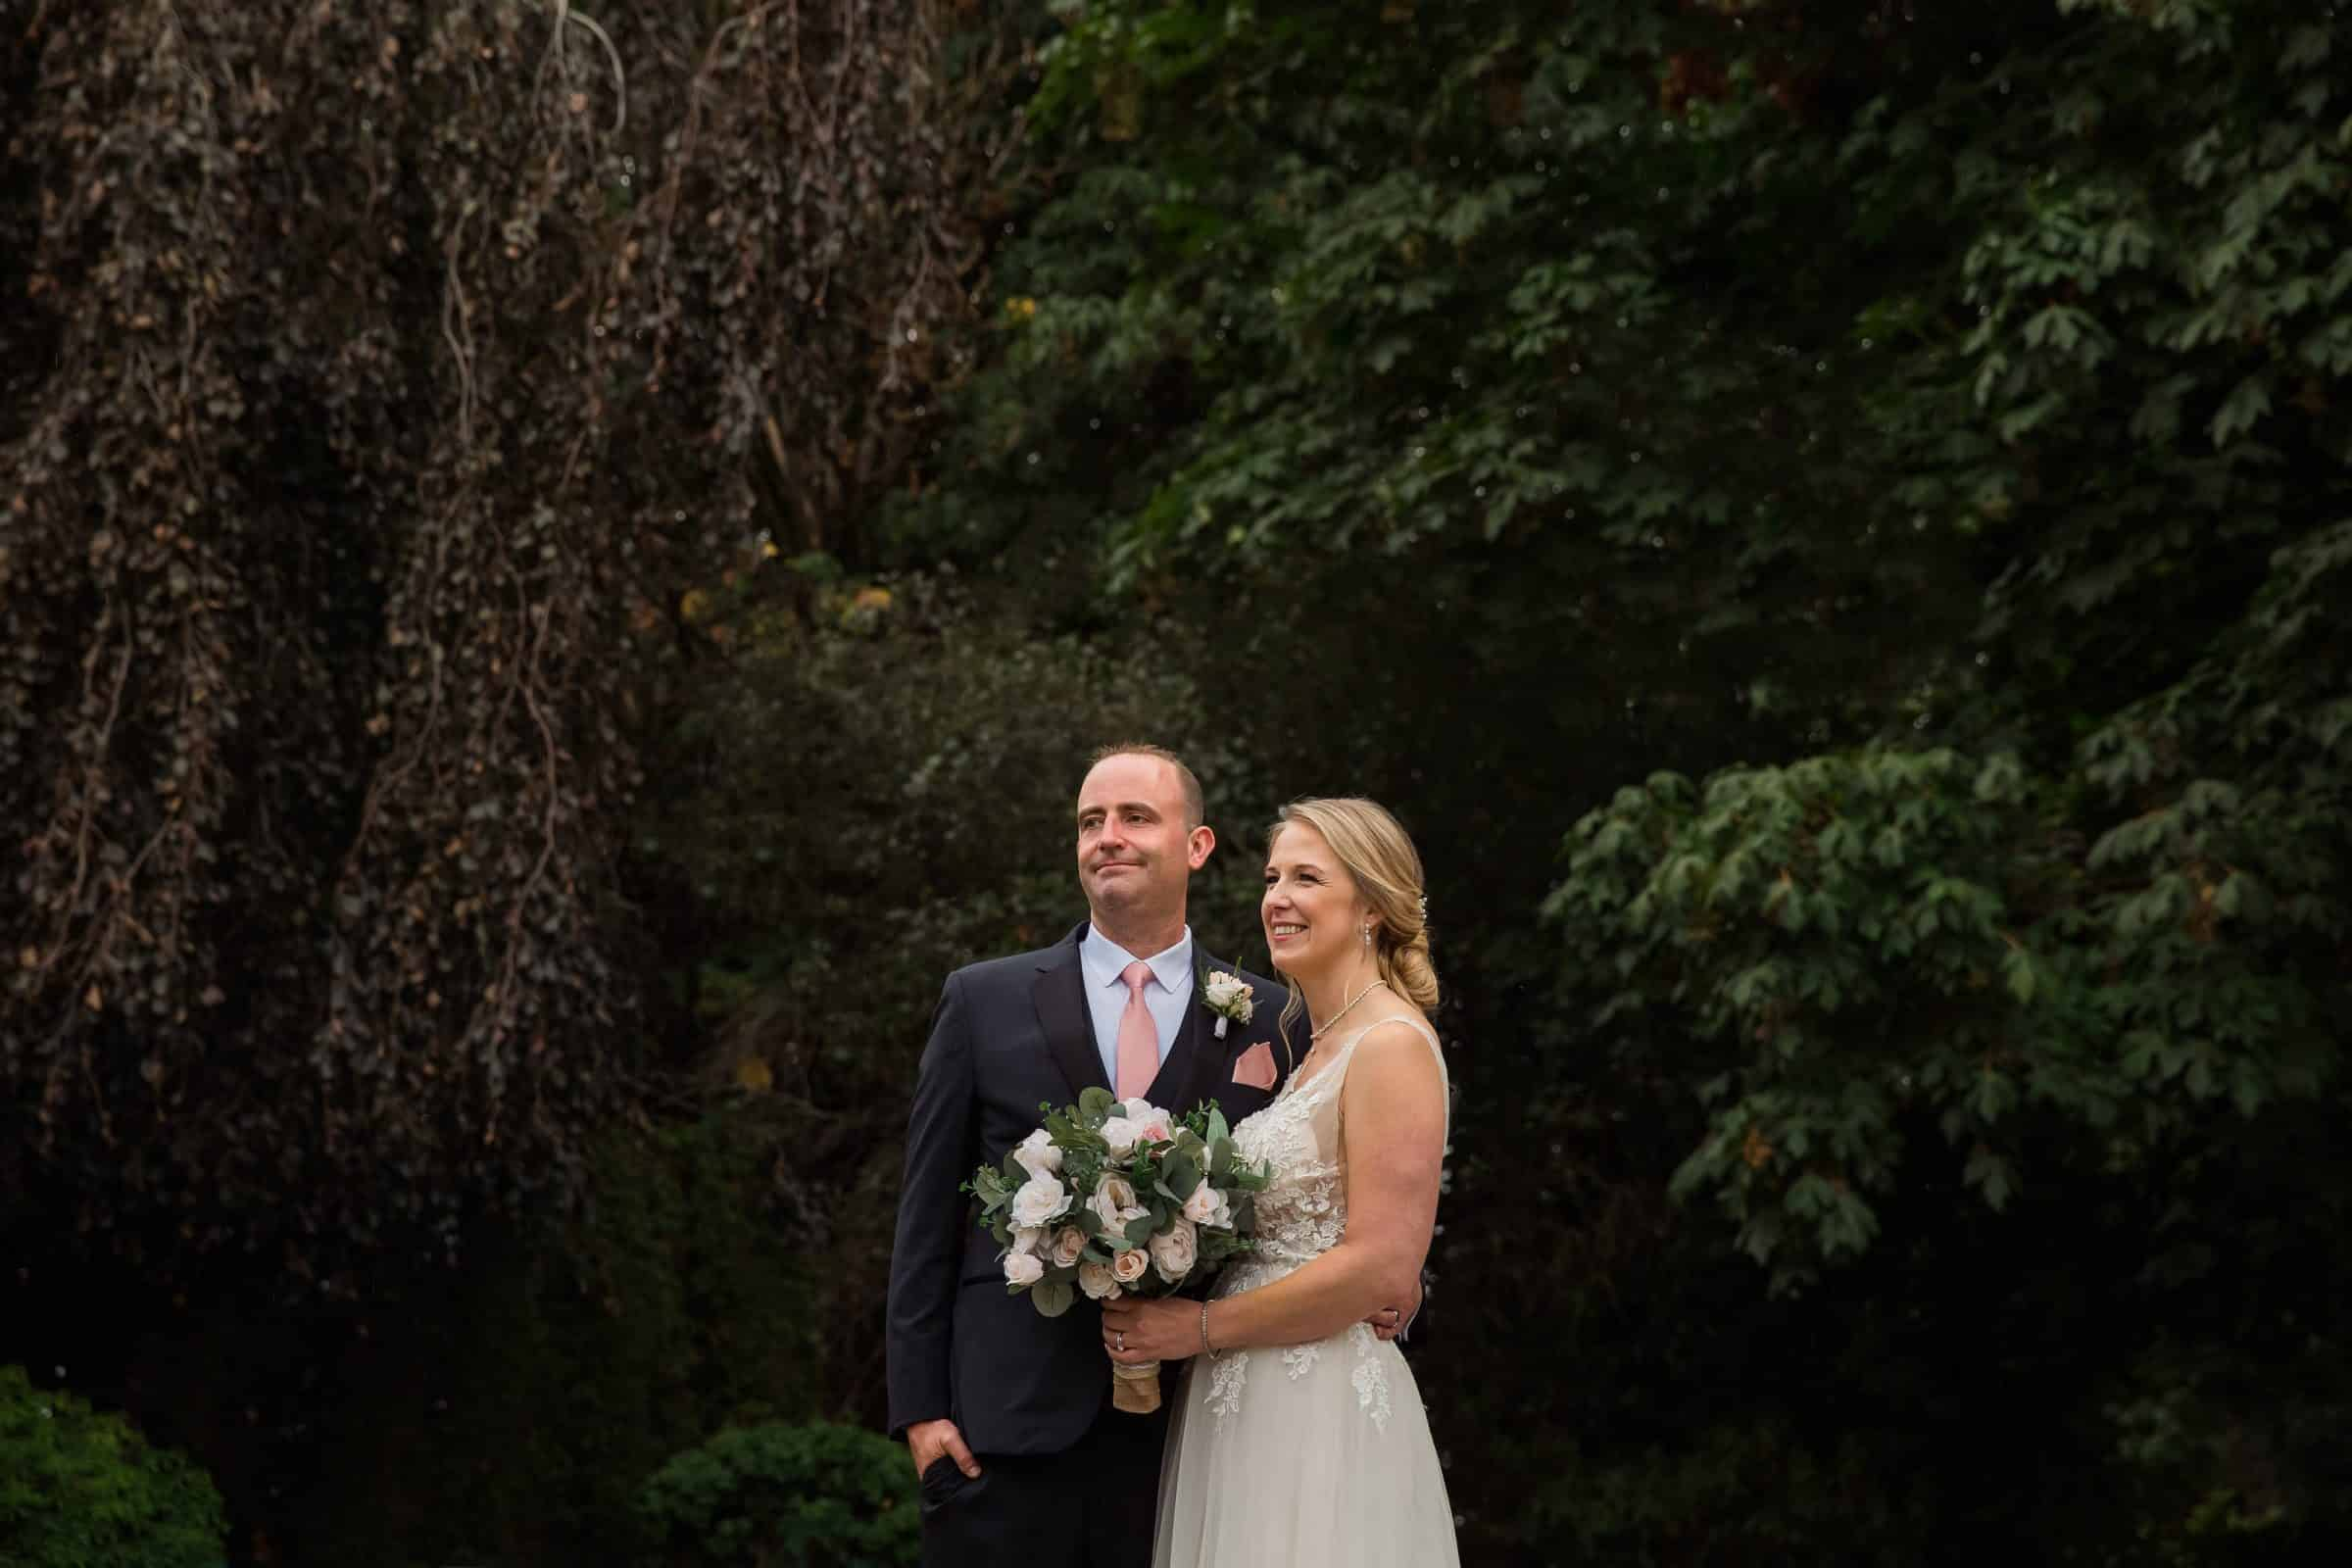 bride and groom standing together surrounded by trees